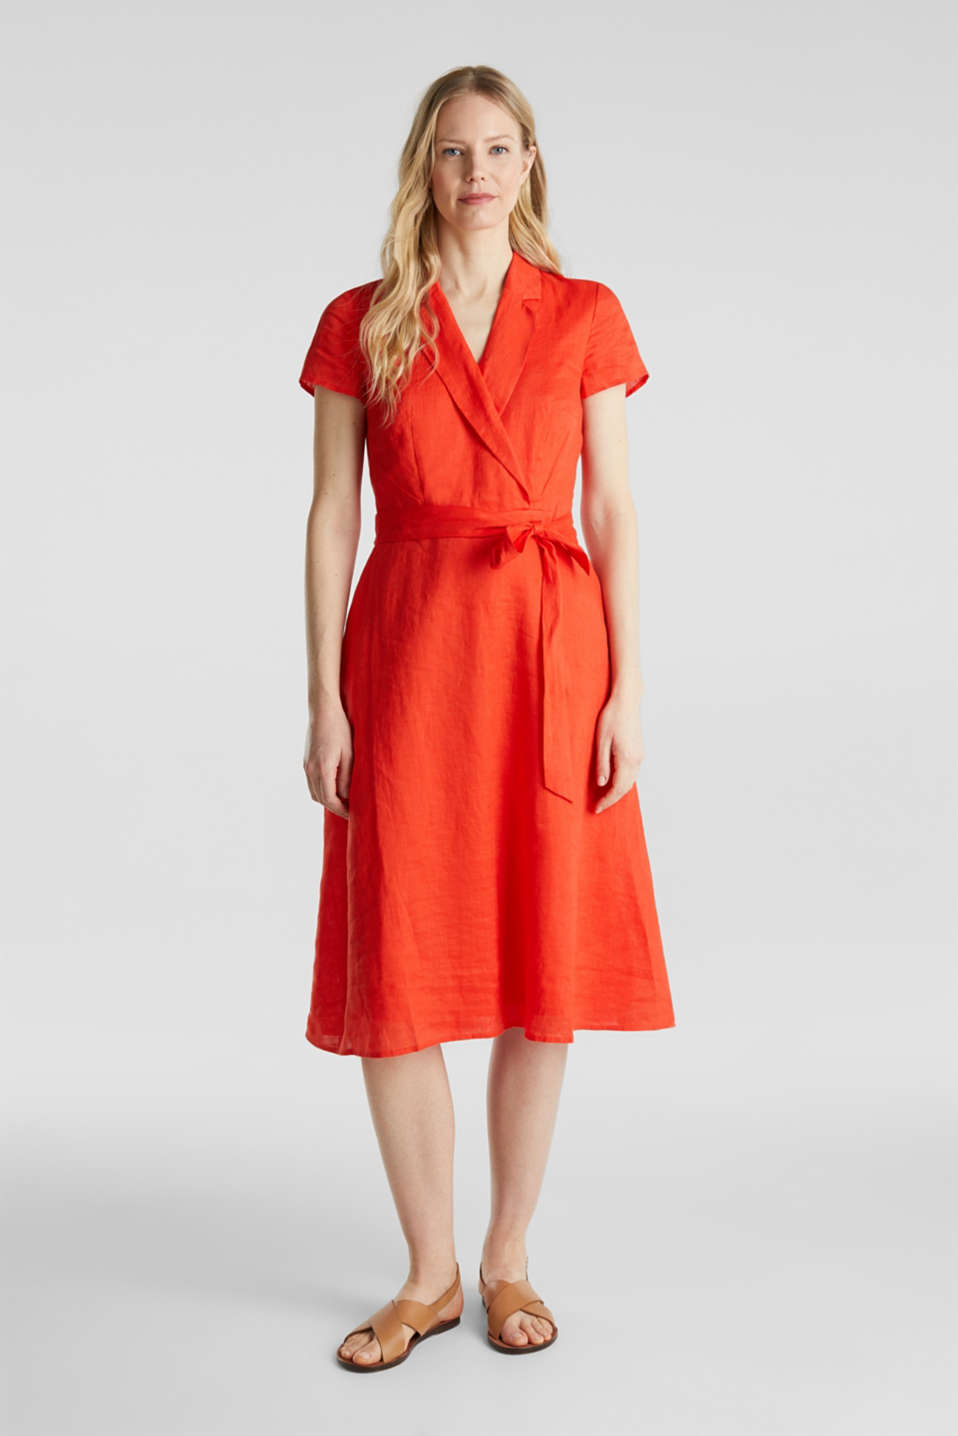 Esprit - Made of linen: dress with a wrap-over effect